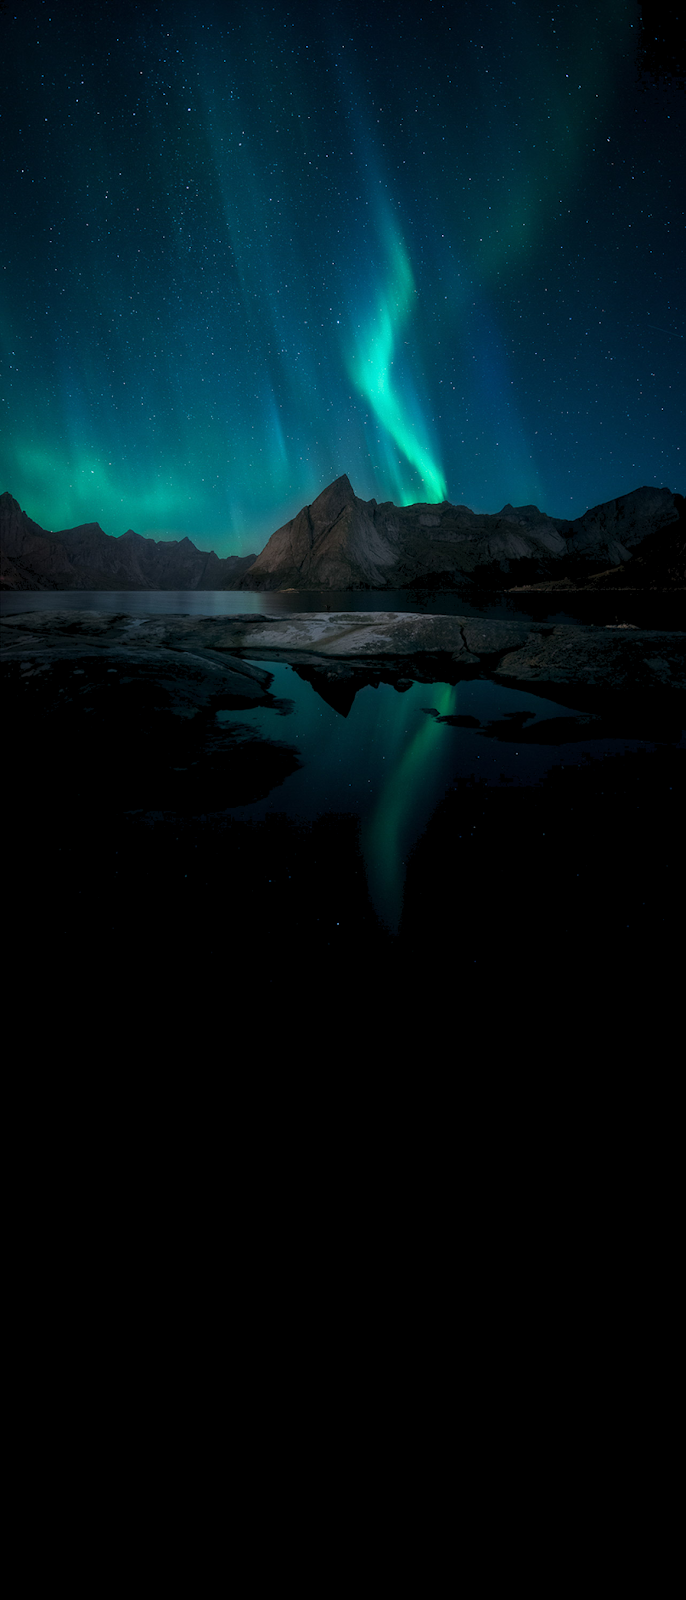 Aurora Borealis Wallpaper Iphone Android Background Followme Samsung Wallpaper Northern Lights Wallpaper Aurora Borealis